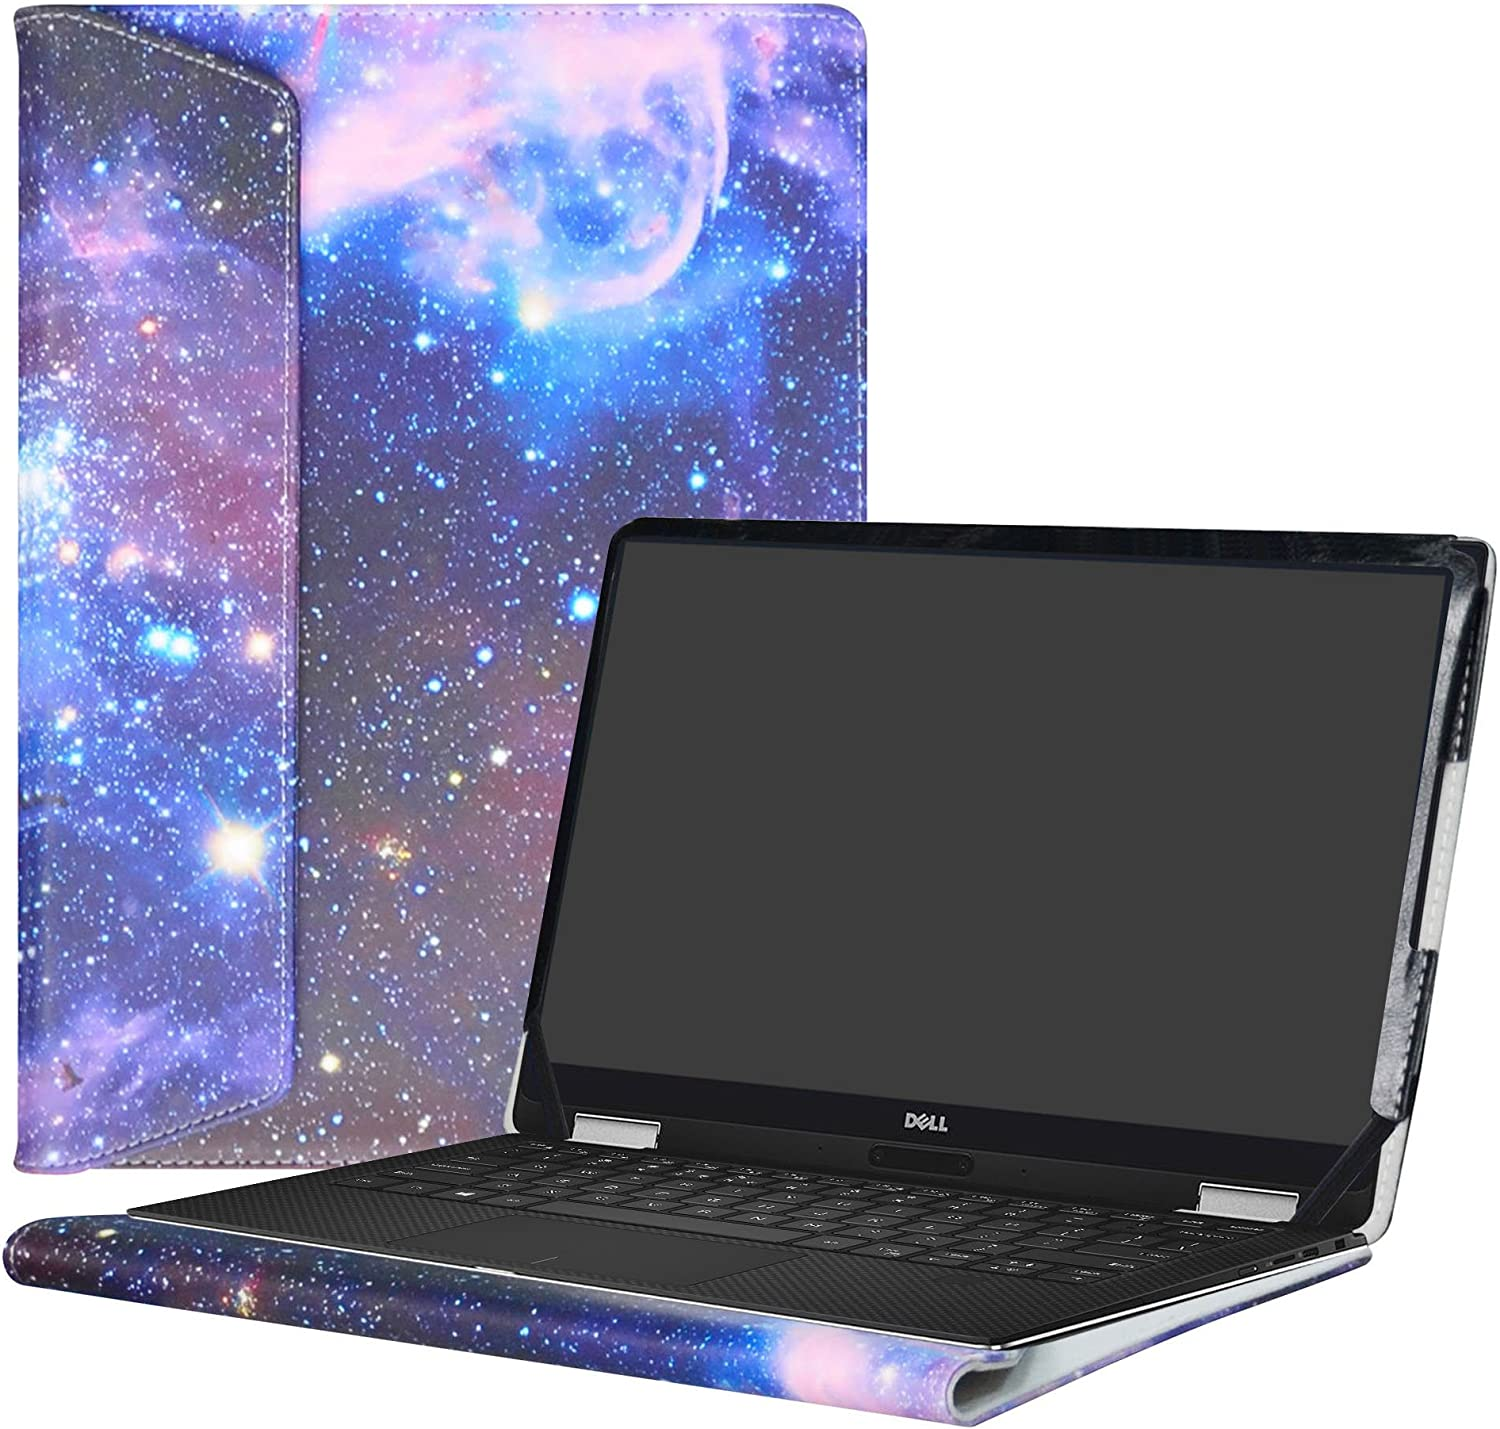 """Alapmk Protective Case Cover For 13.3"""" Dell XPS 13 9370 9360 9350 9343/XPS 13 2 in 1 9365 Laptop[Note:Not fit xps 13 7390 9380 9333 L321X/XPS 13 2 in 1 7390],Galaxy"""